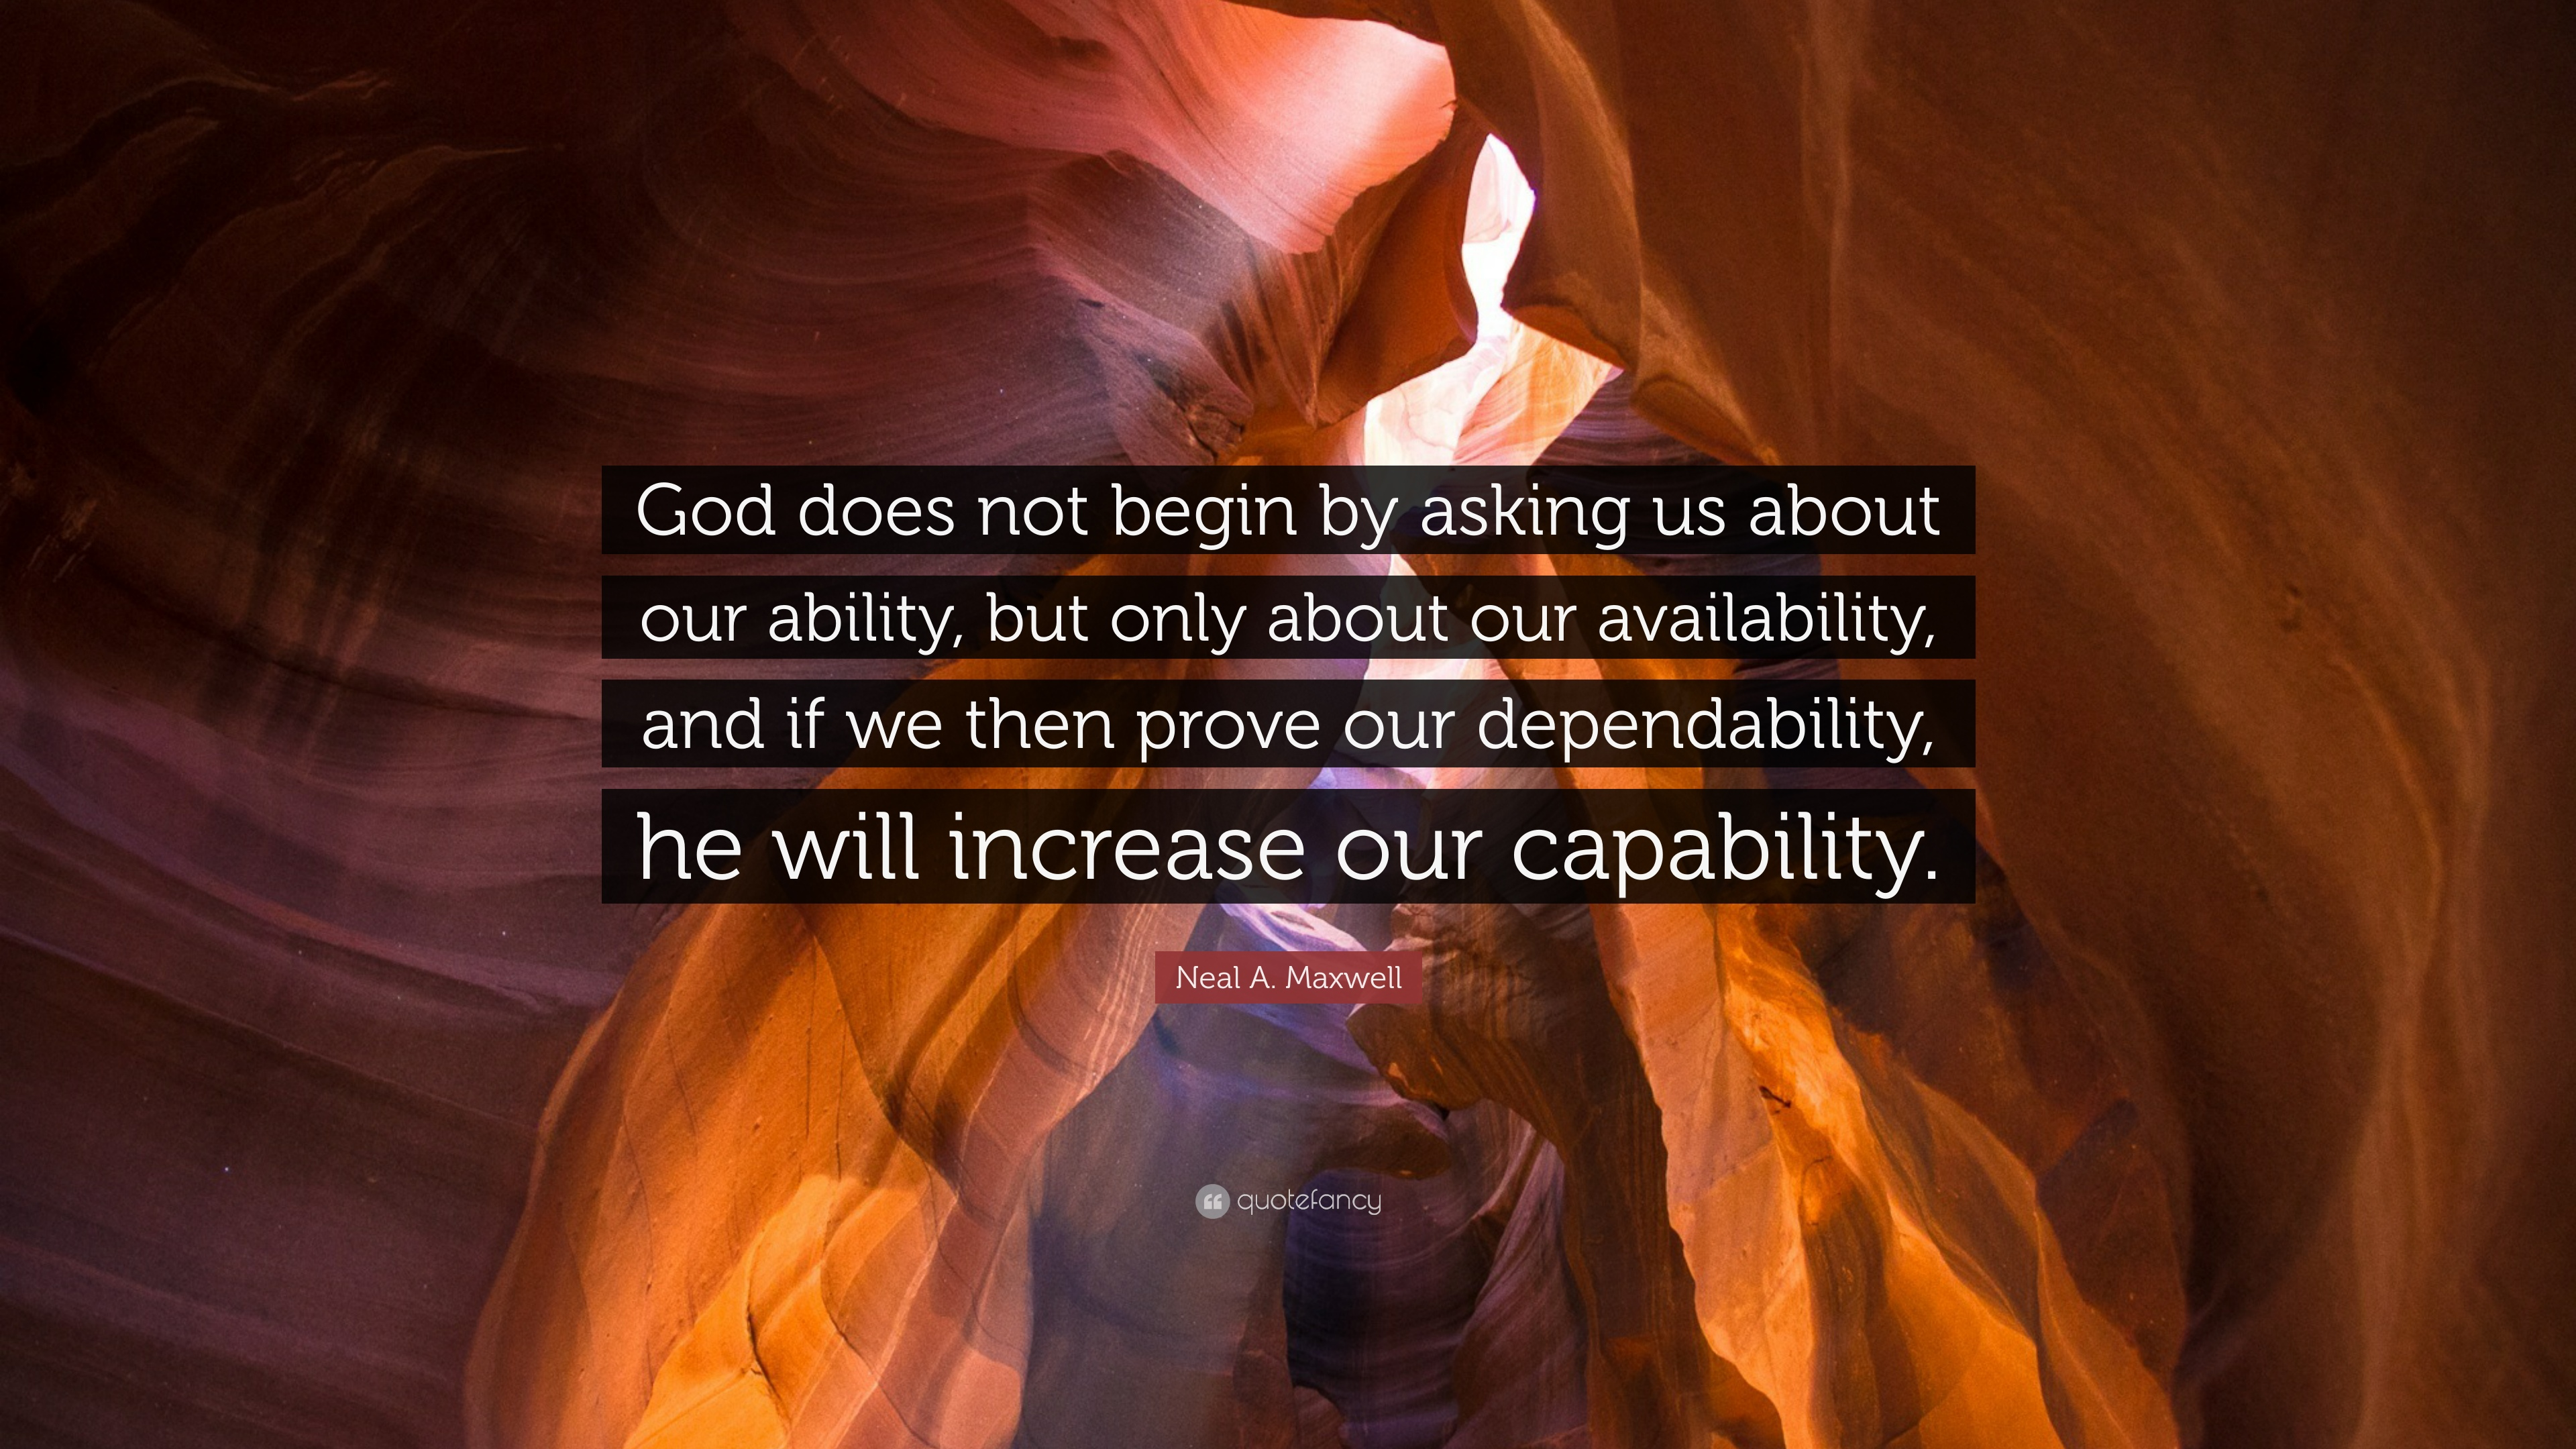 But Theyre Only 12 Why And How To Begin >> Neal A Maxwell Quote God Does Not Begin By Asking Us About Our